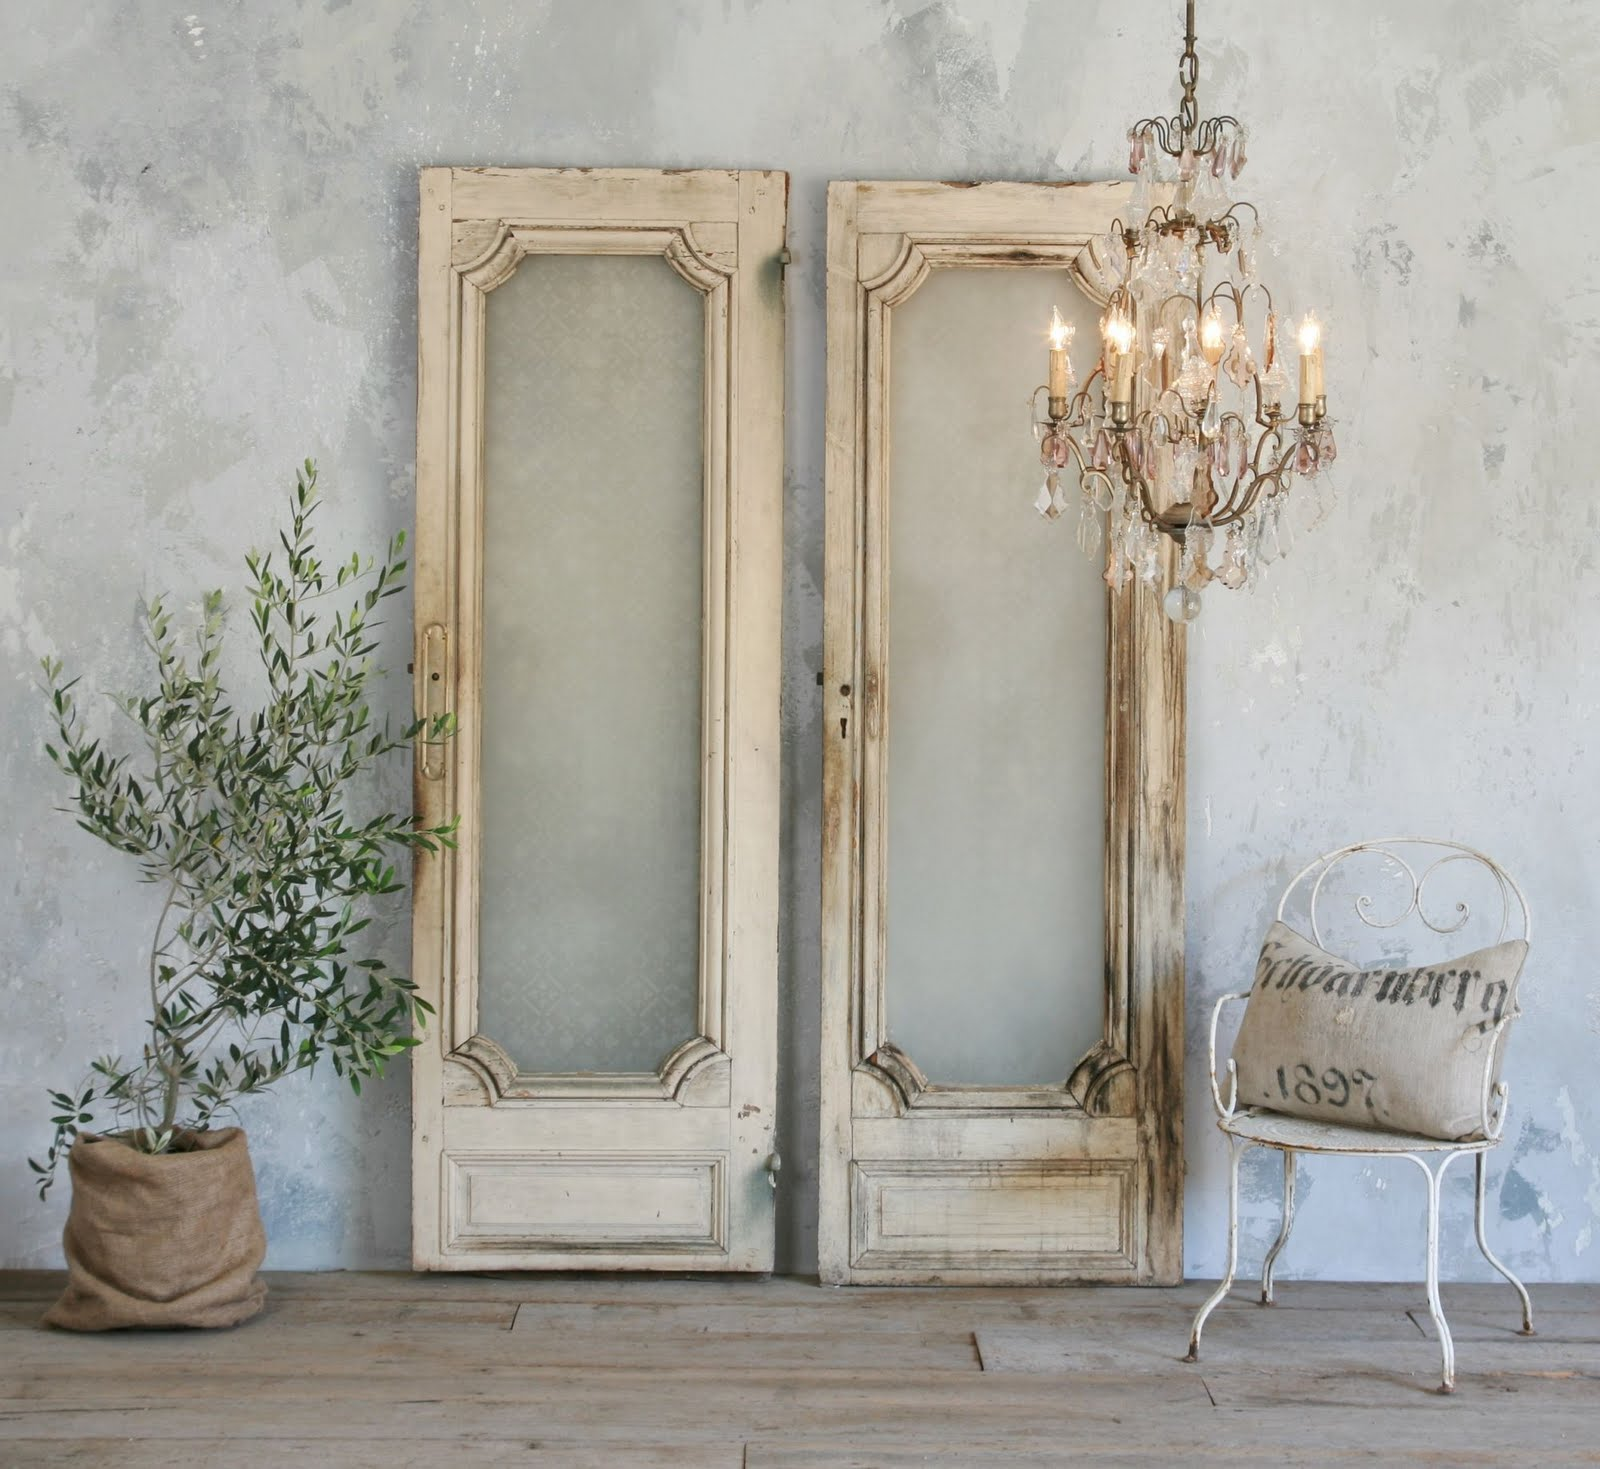 Vintage Doors with Glass